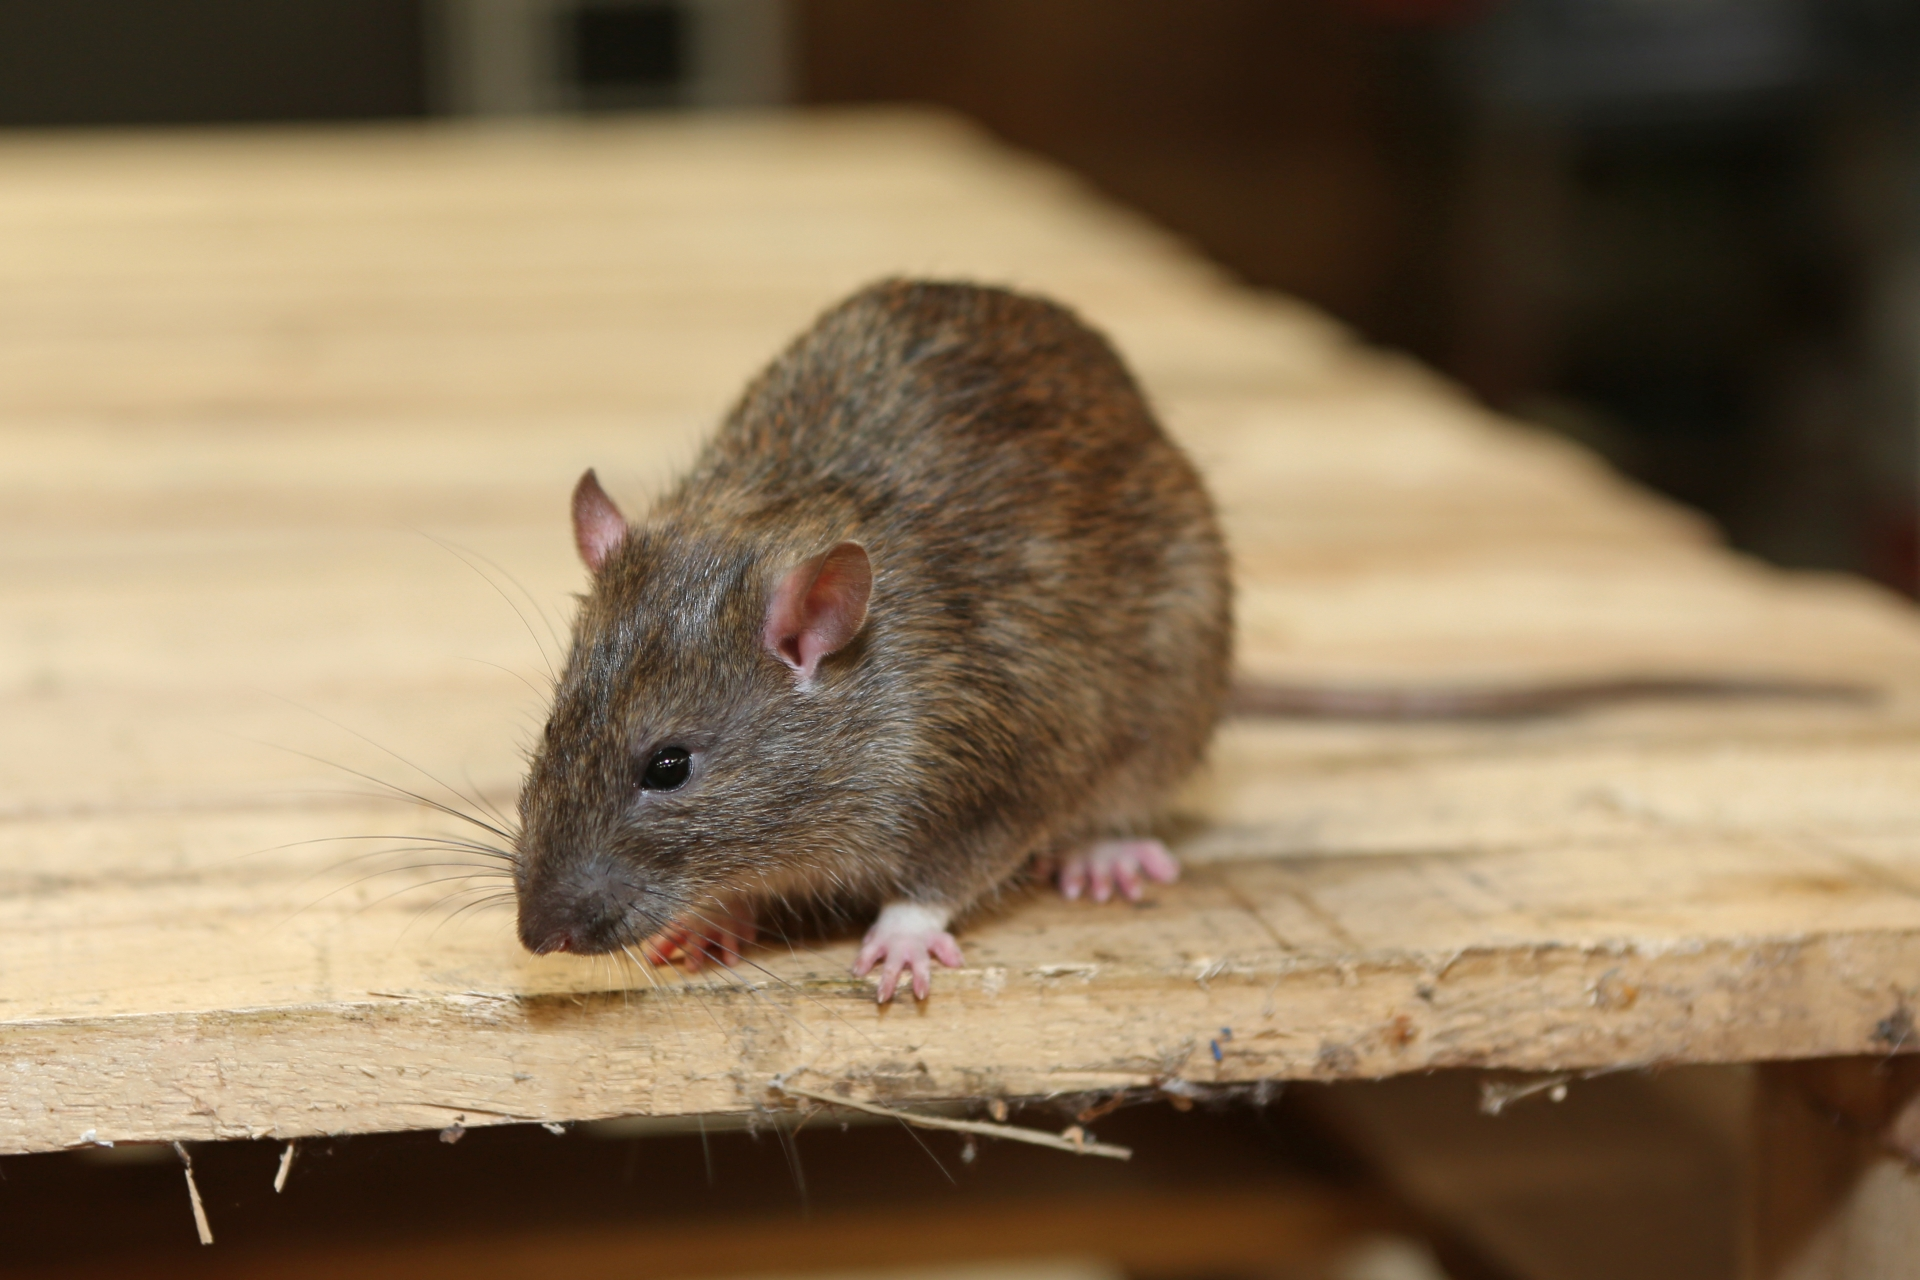 Rat extermination, Pest Control in Mill Hill, NW7. Call Now 020 8166 9746